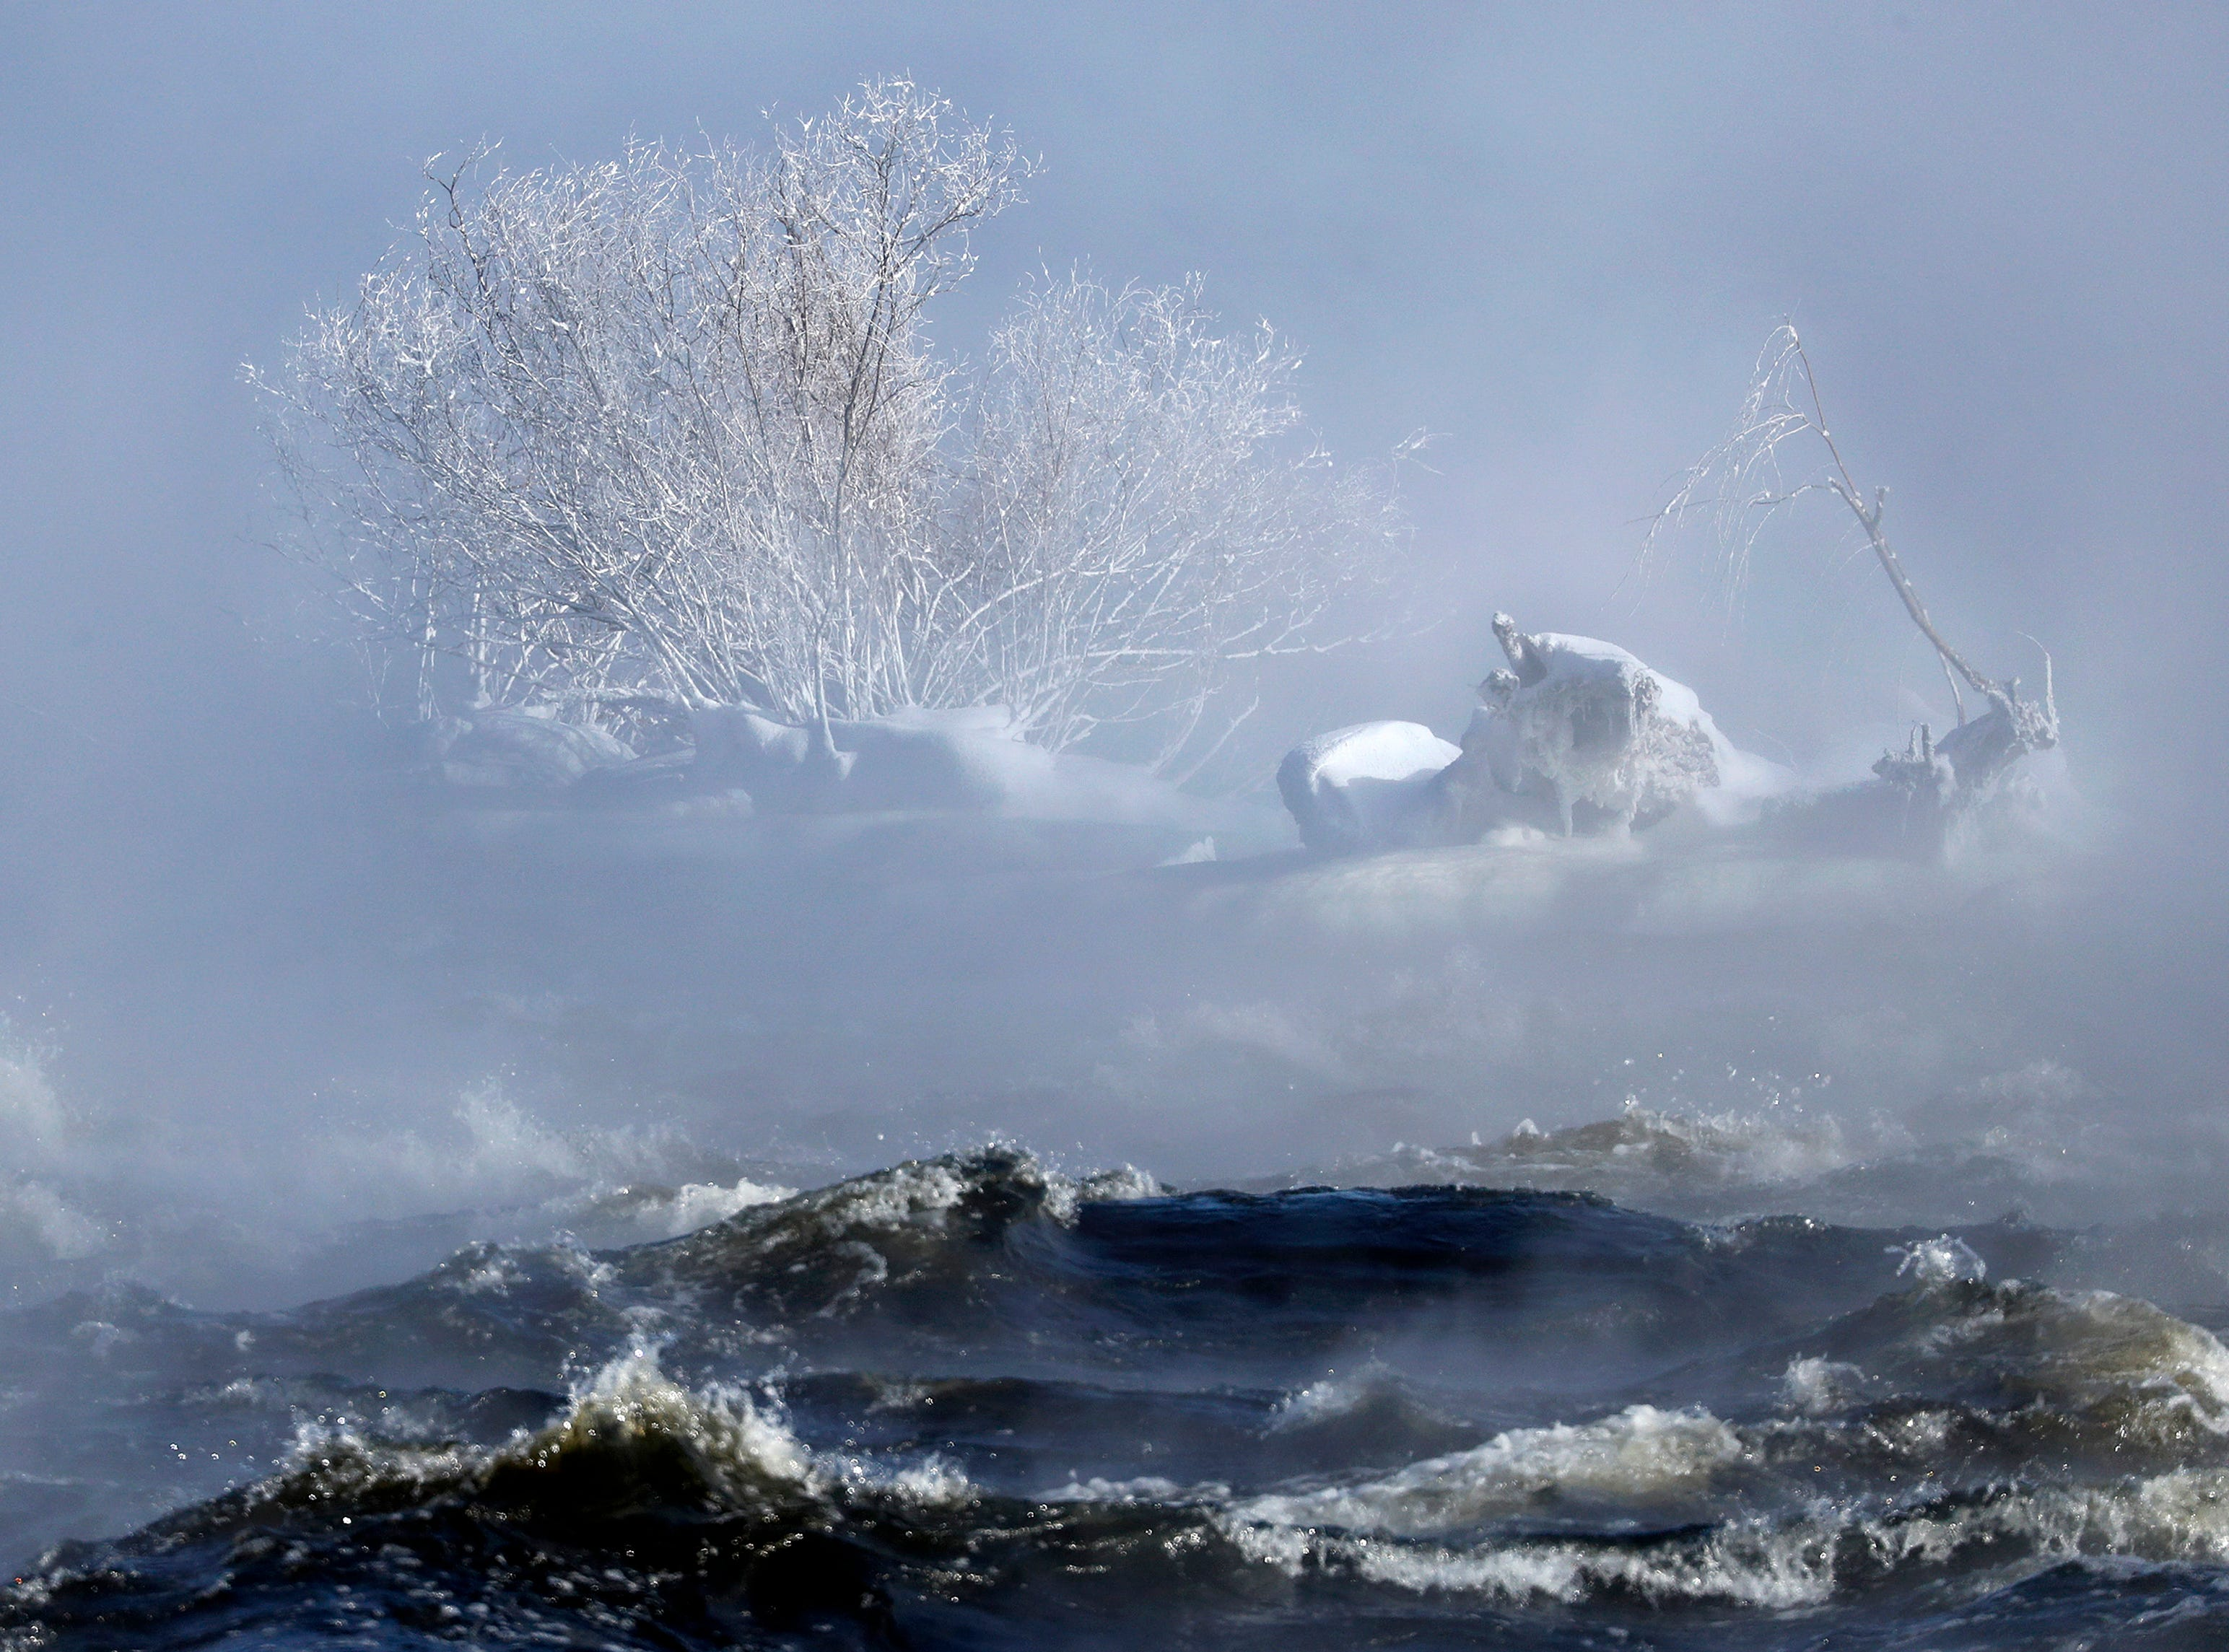 Steam and water from the Fox River whip around a small outcropping of trees and stone Wednesday, Jan. 30, 2019, in Appleton, Wis.